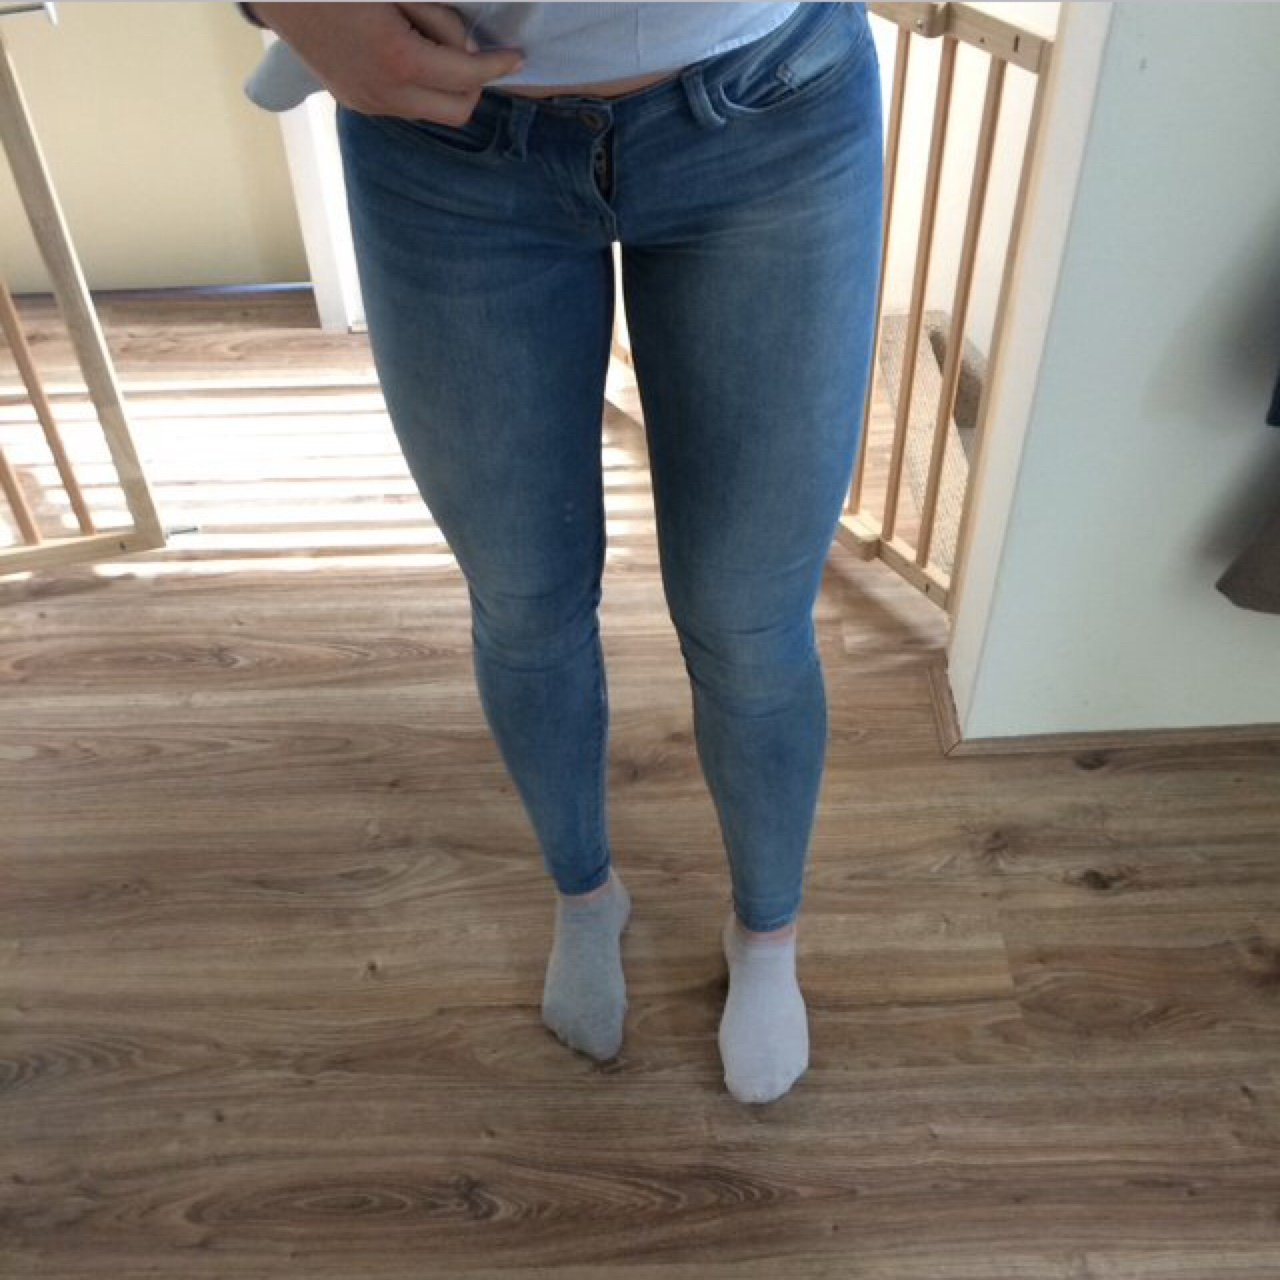 8mm Jeans Listed On Depop By Zoerosalie